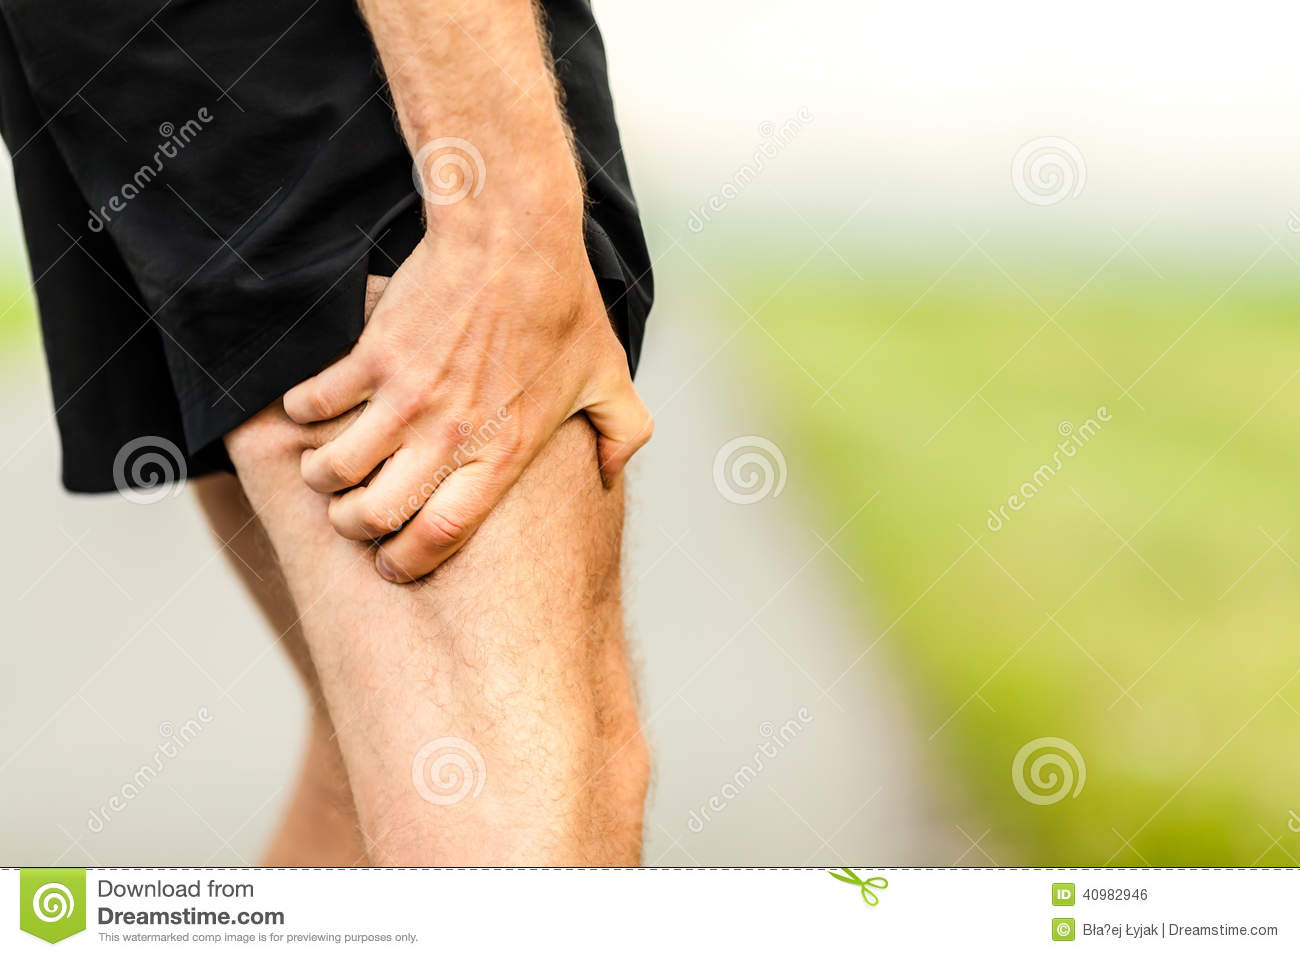 Runners Leg Pain Injury Stock Photo - Image: 40982946